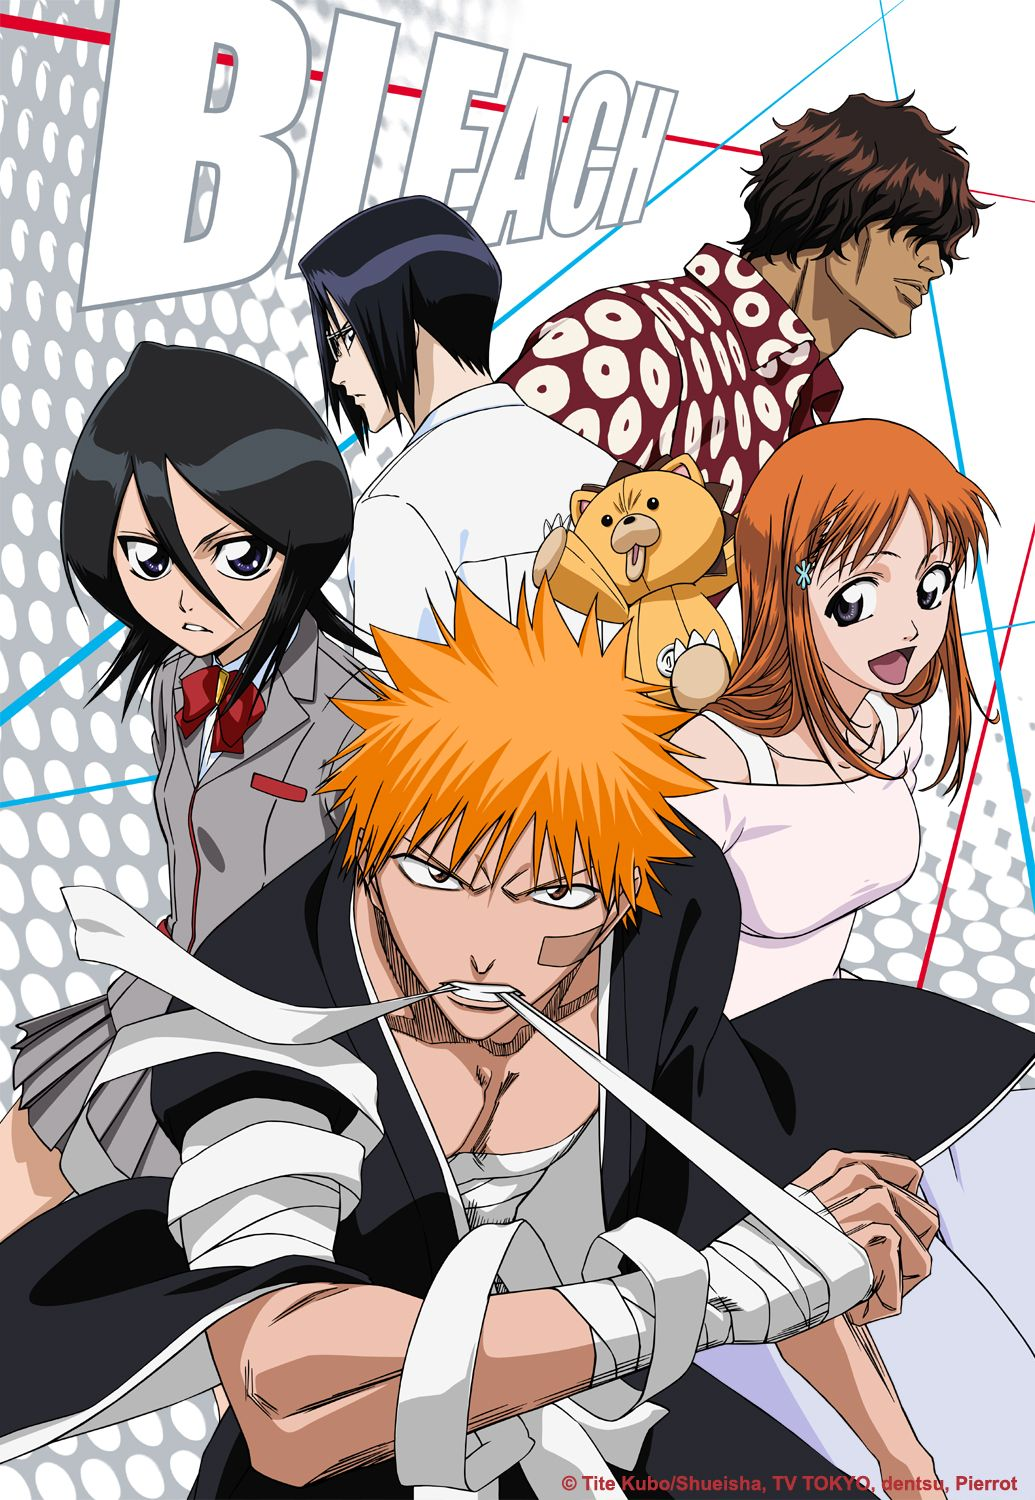 Bleach Episodes 1279 (and movies Memories of Nobody, The